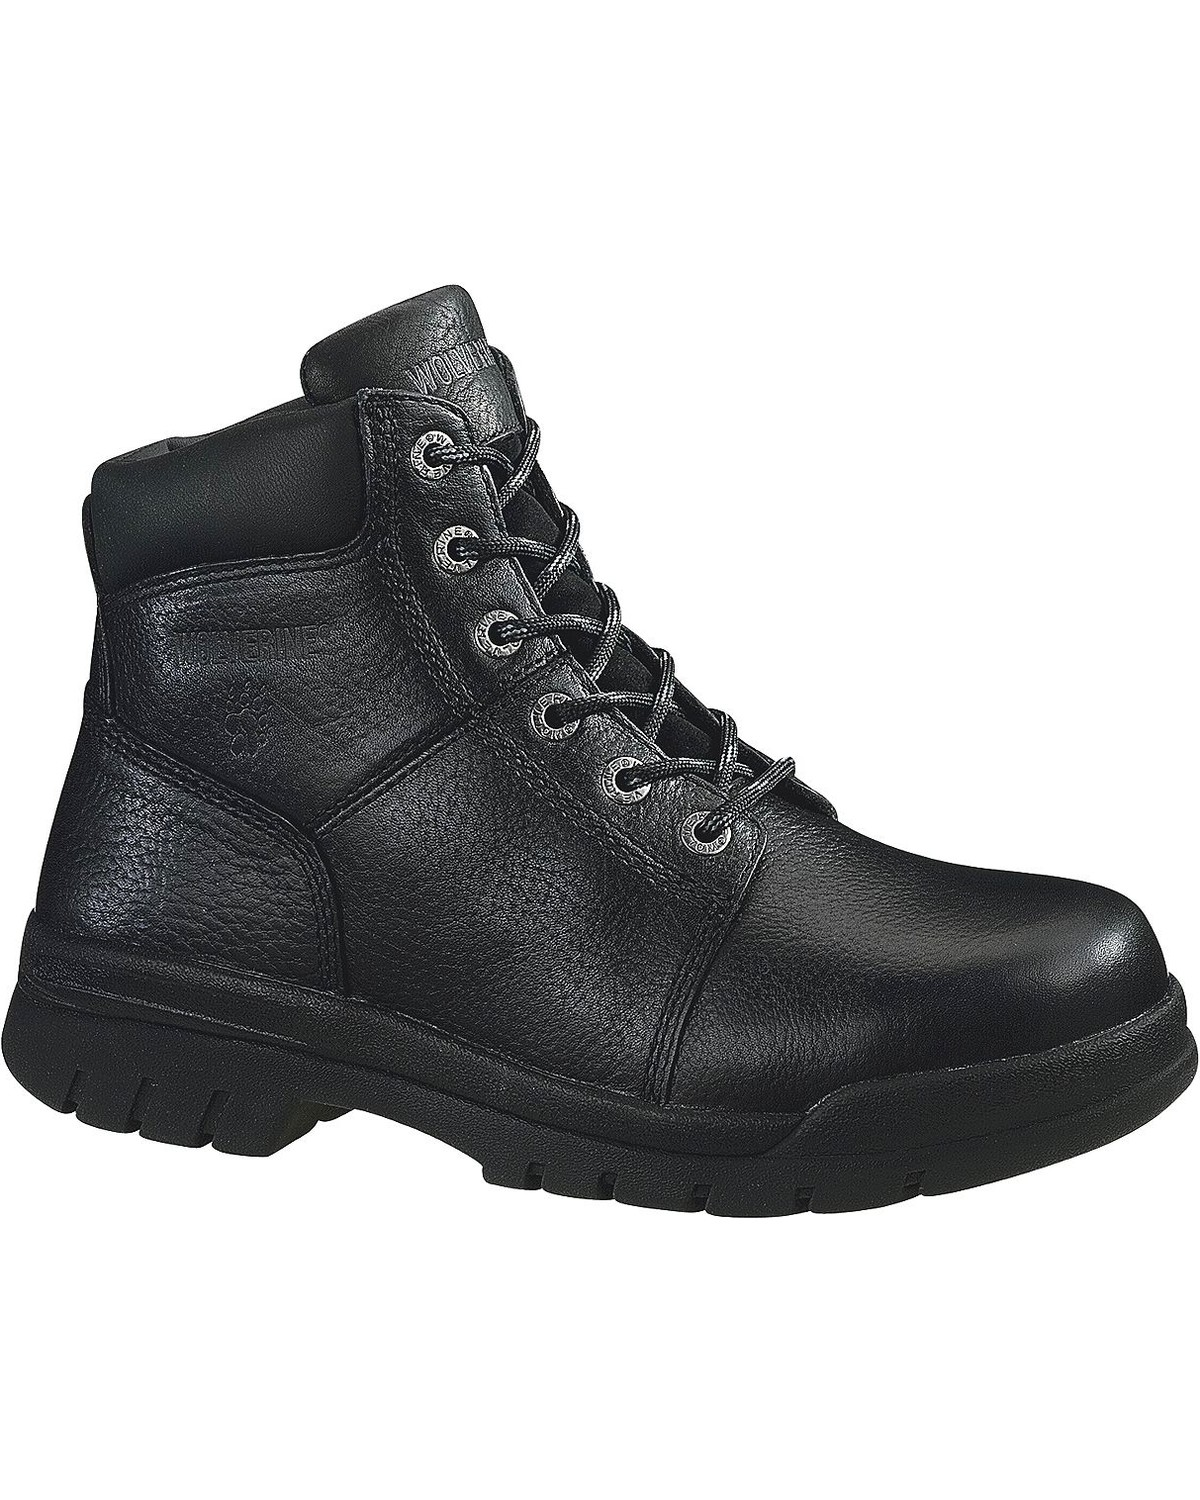 a64f44f6c86 Wolverine Men's Marquette Steel Toe EH Work Boots